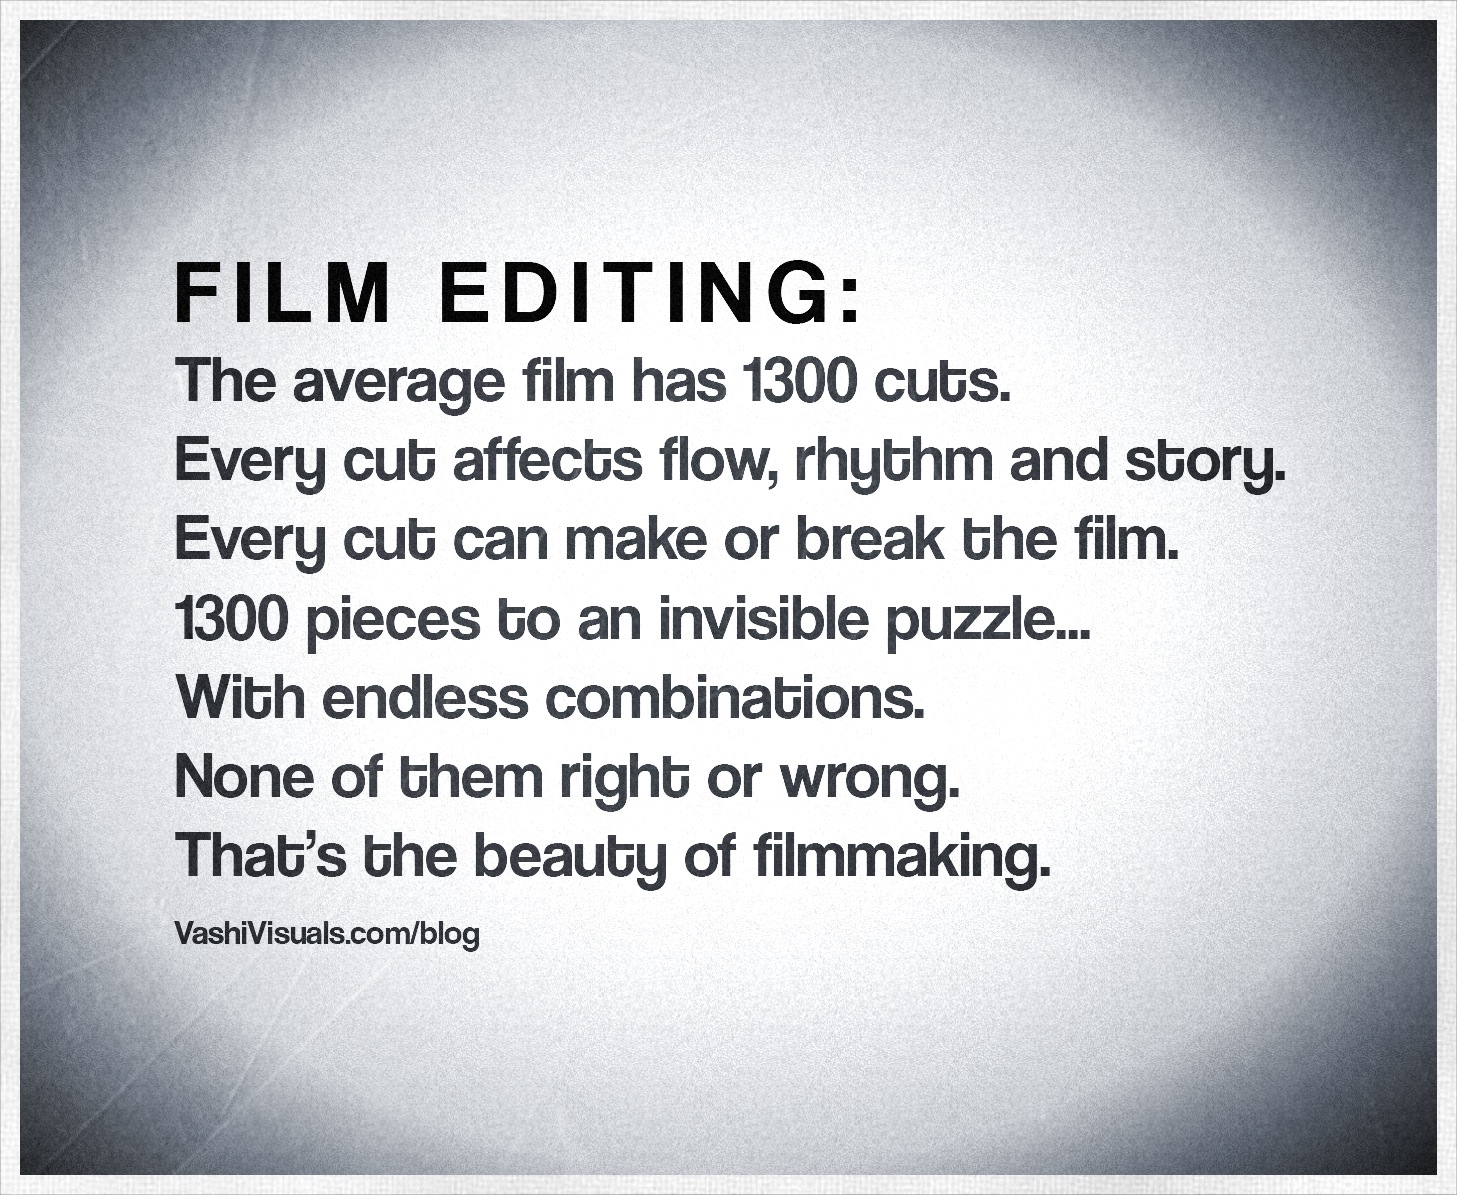 Vashi's quote on film editing